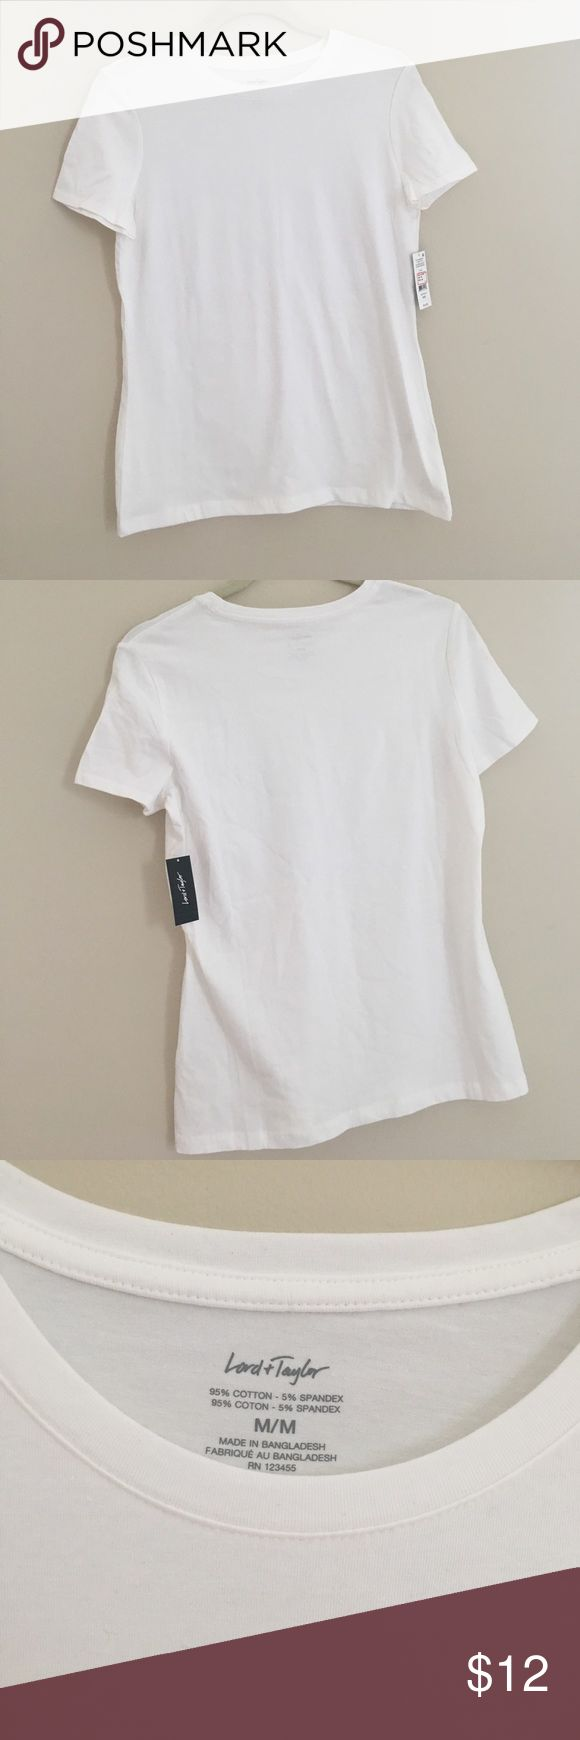 Lord Taylor white tee shirt M Lord Taylor white Medium white tee shirt Lord & Taylor Tops Tees - Short Sleeve